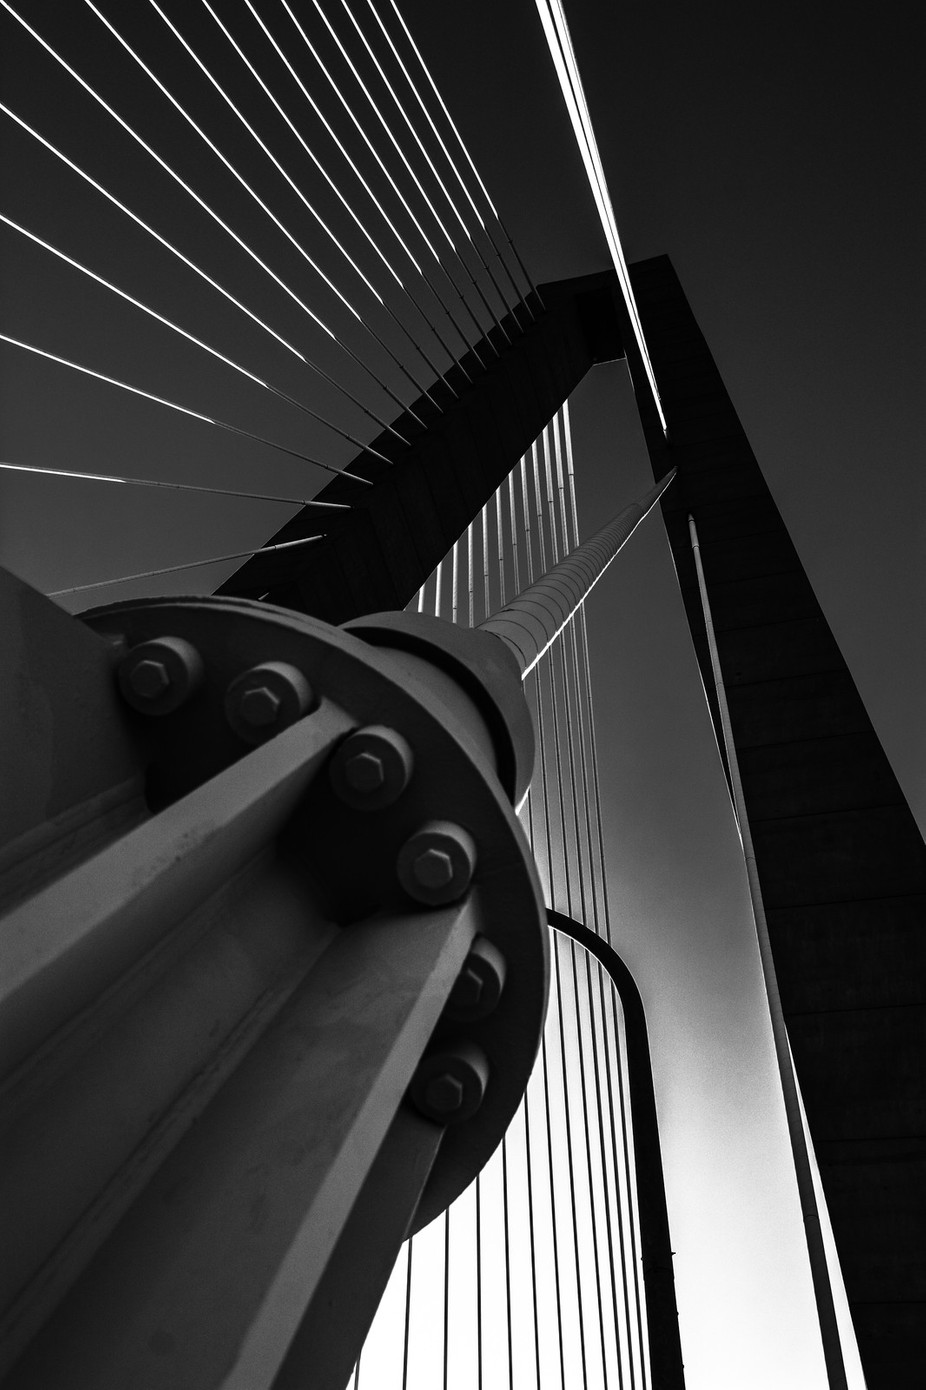 Arthur Ravenel Bridge Series in Black and White by Photogirl118 - Spectacular Bridges Photo Contest